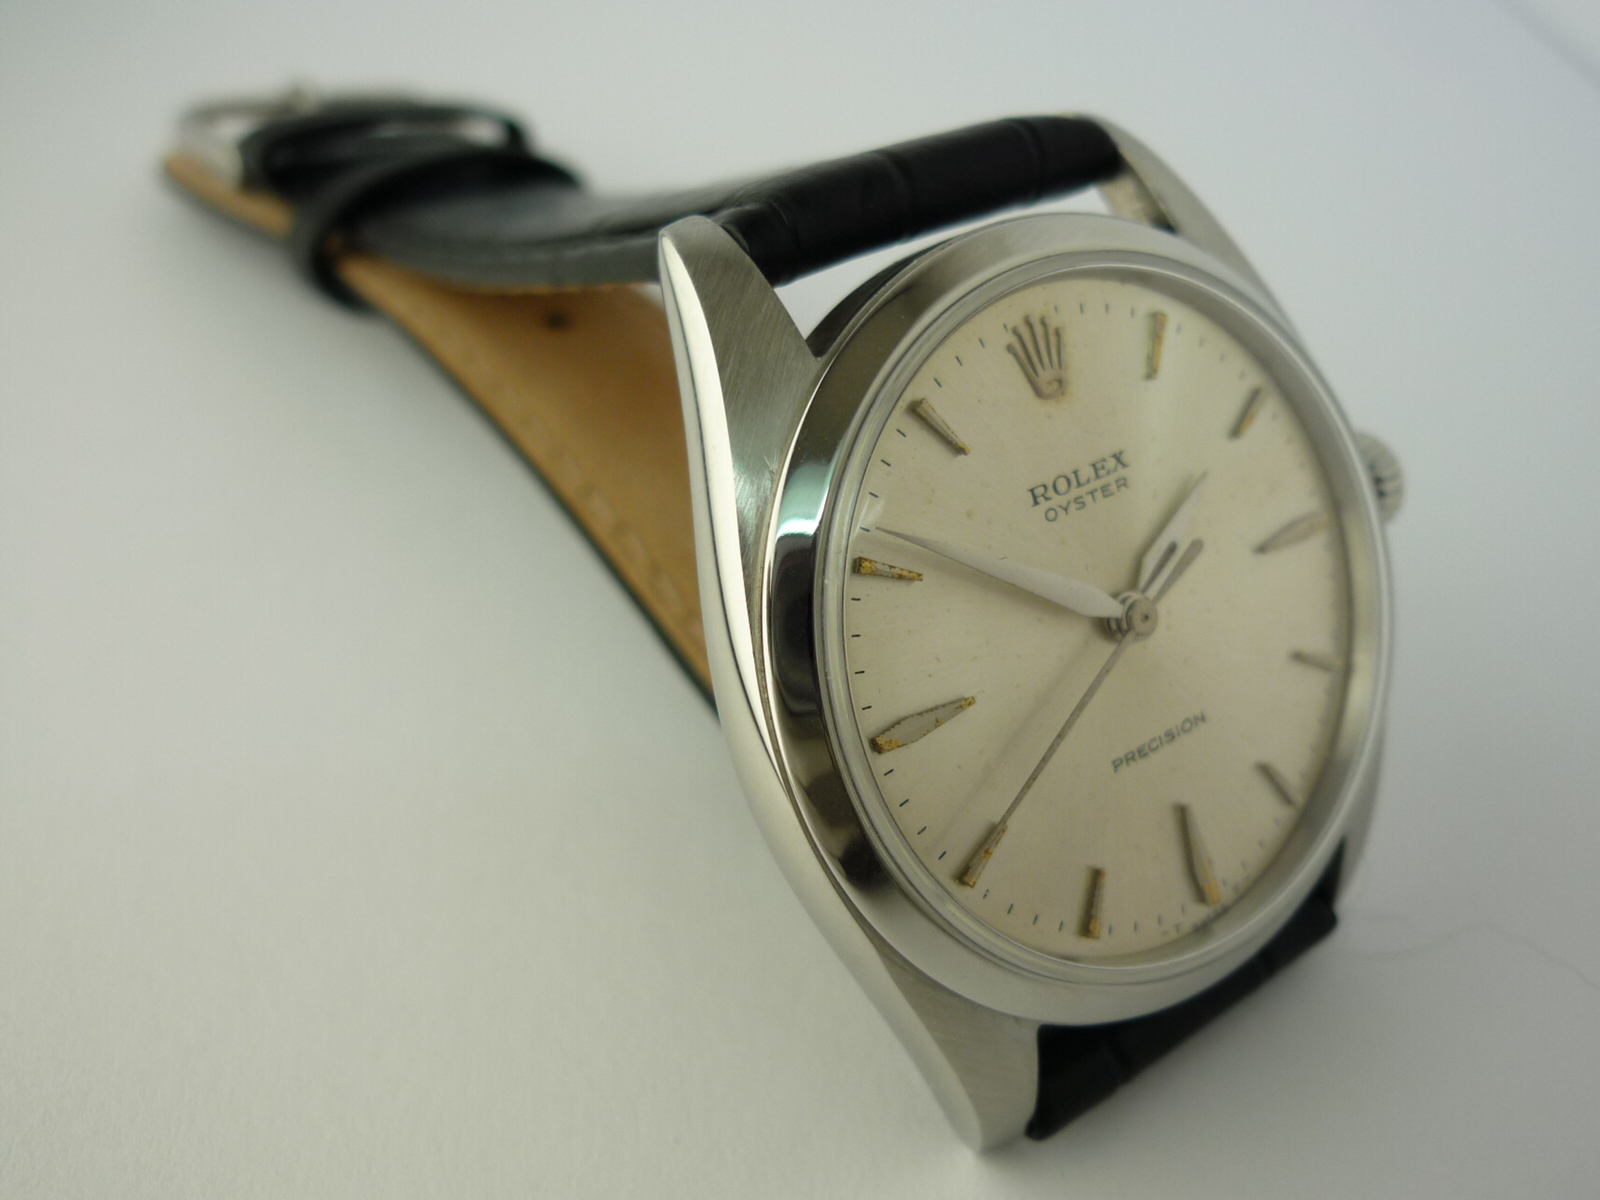 Rolex Oyster precision watch ref 6424 (1964)